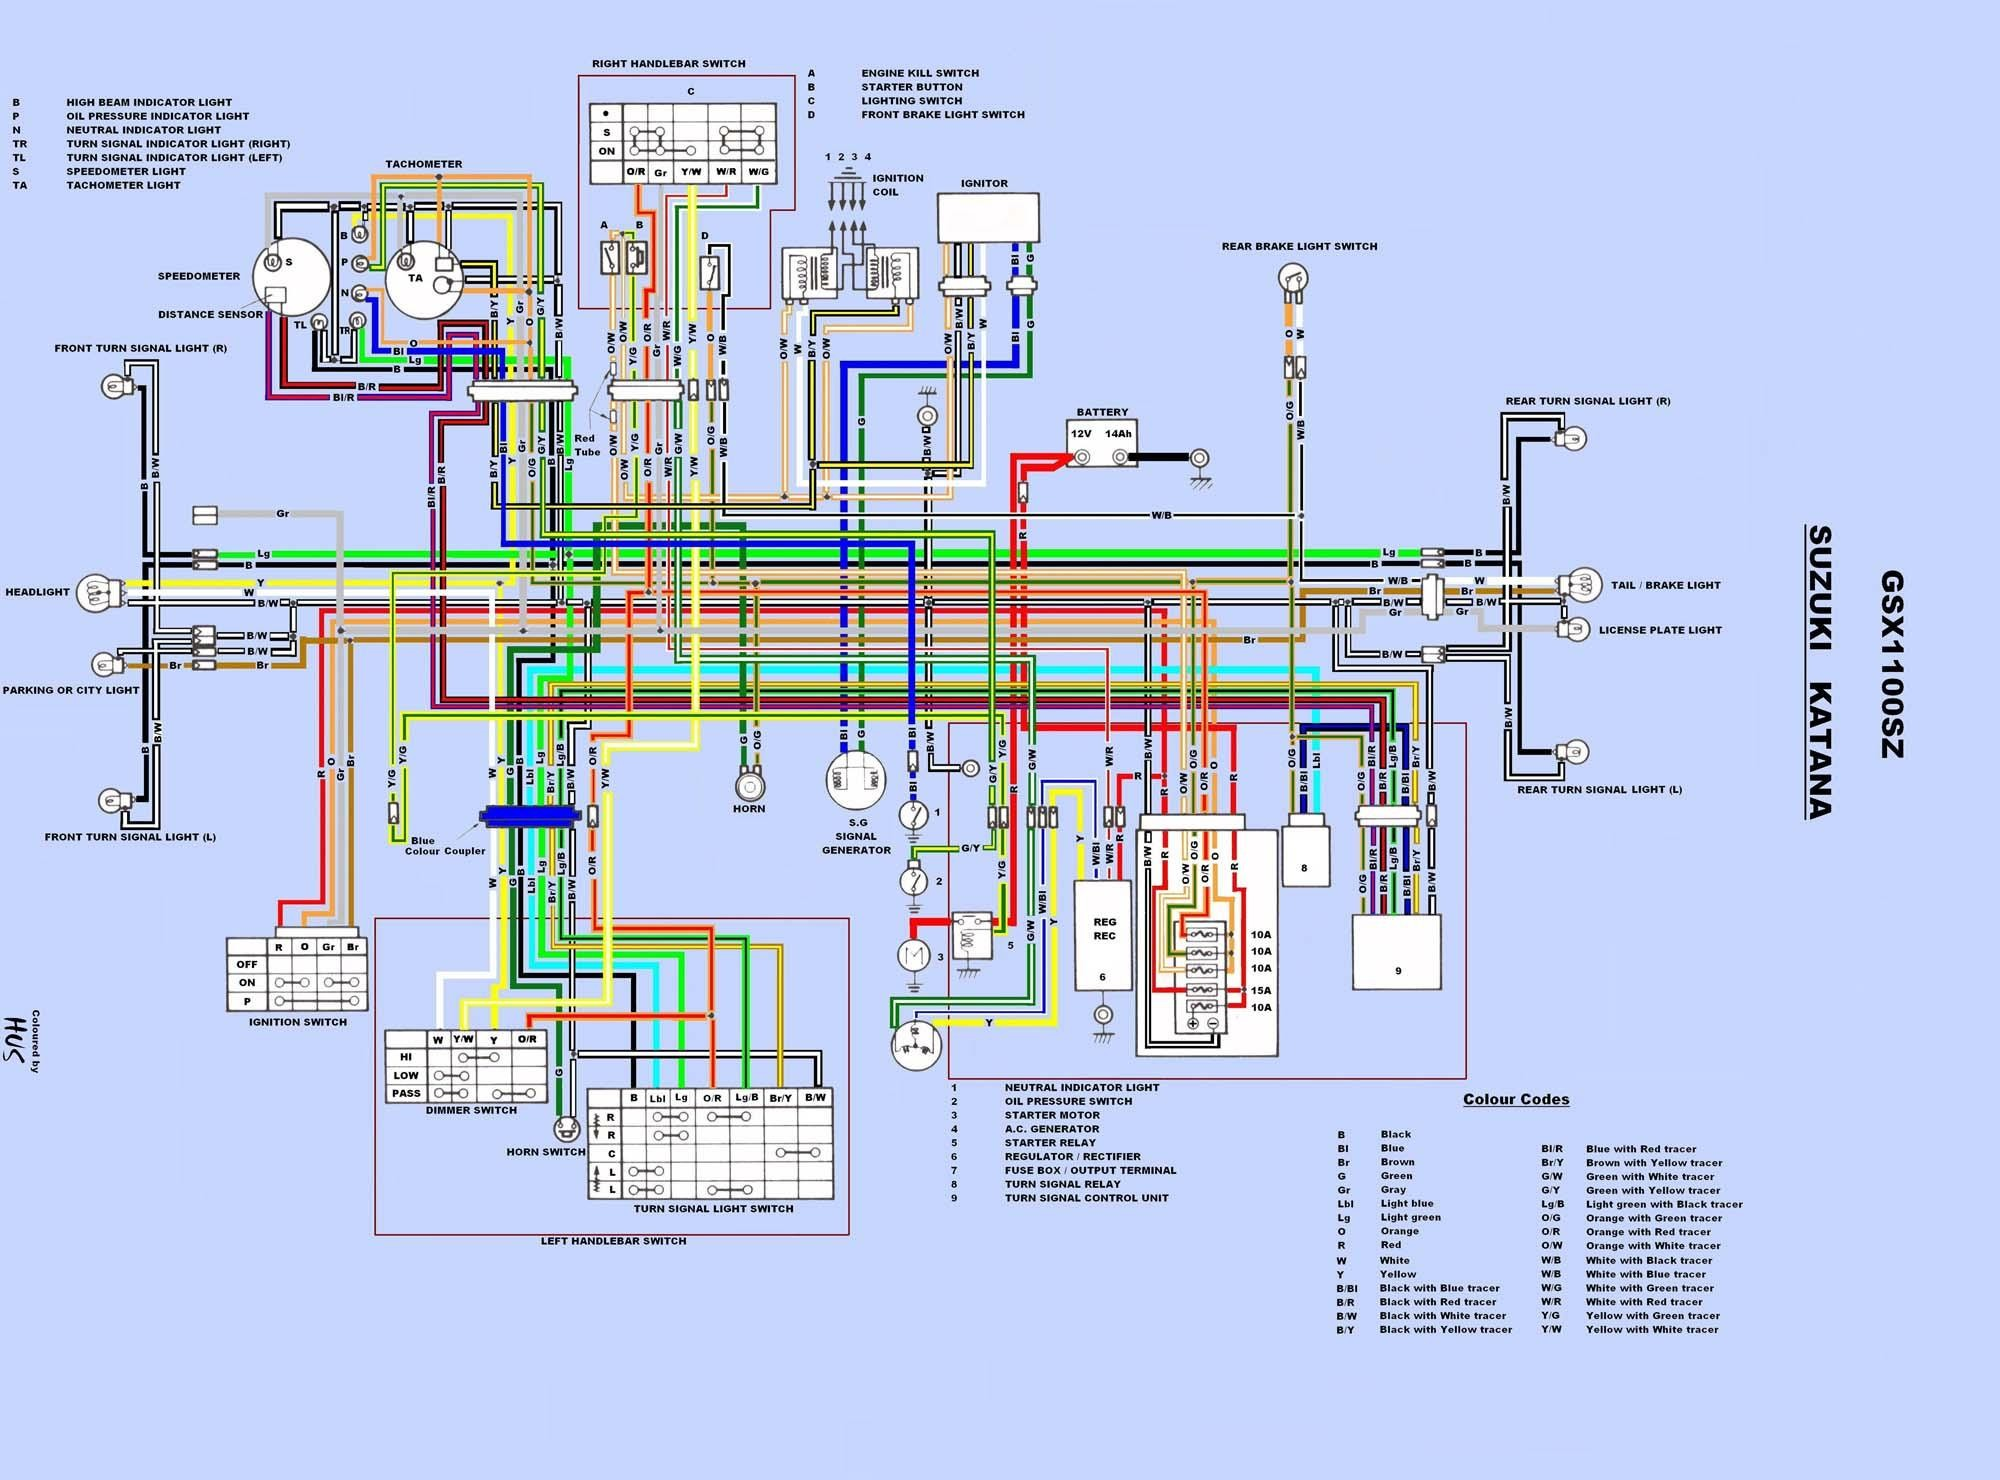 94 gsxr wiring diagram schematic diagram 91 Suzuki Wire Diagram wiring diagram for gsxr 600 schematic diagram wiring diagram for 1998 gsxr 600 suzuki bandit wiring